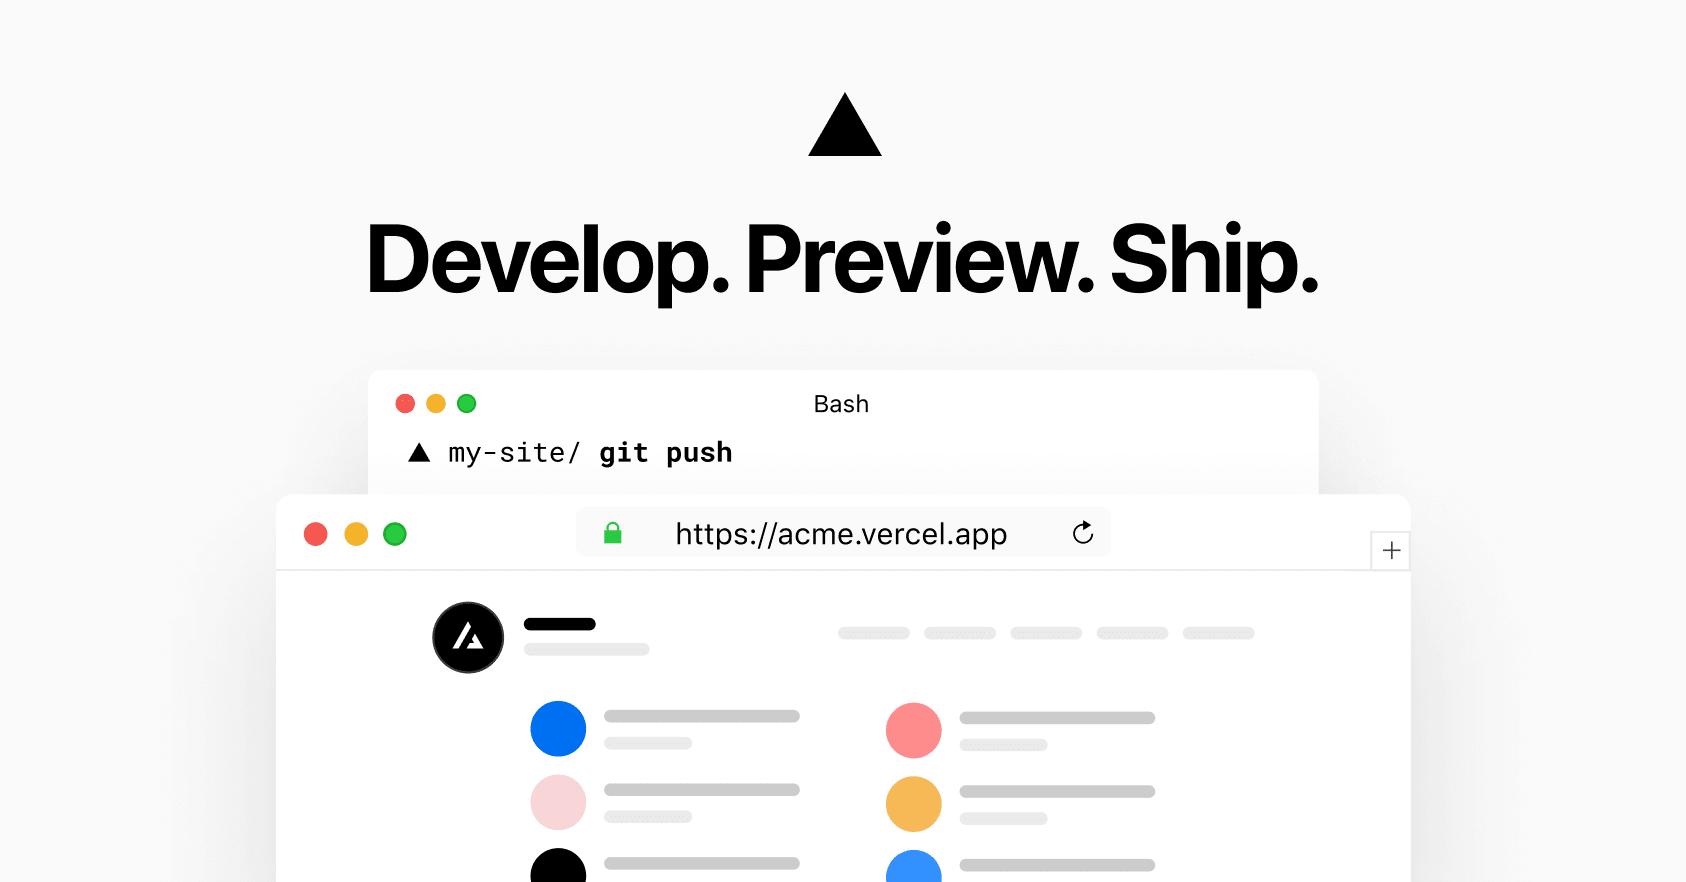 Develop. Preview. Ship.